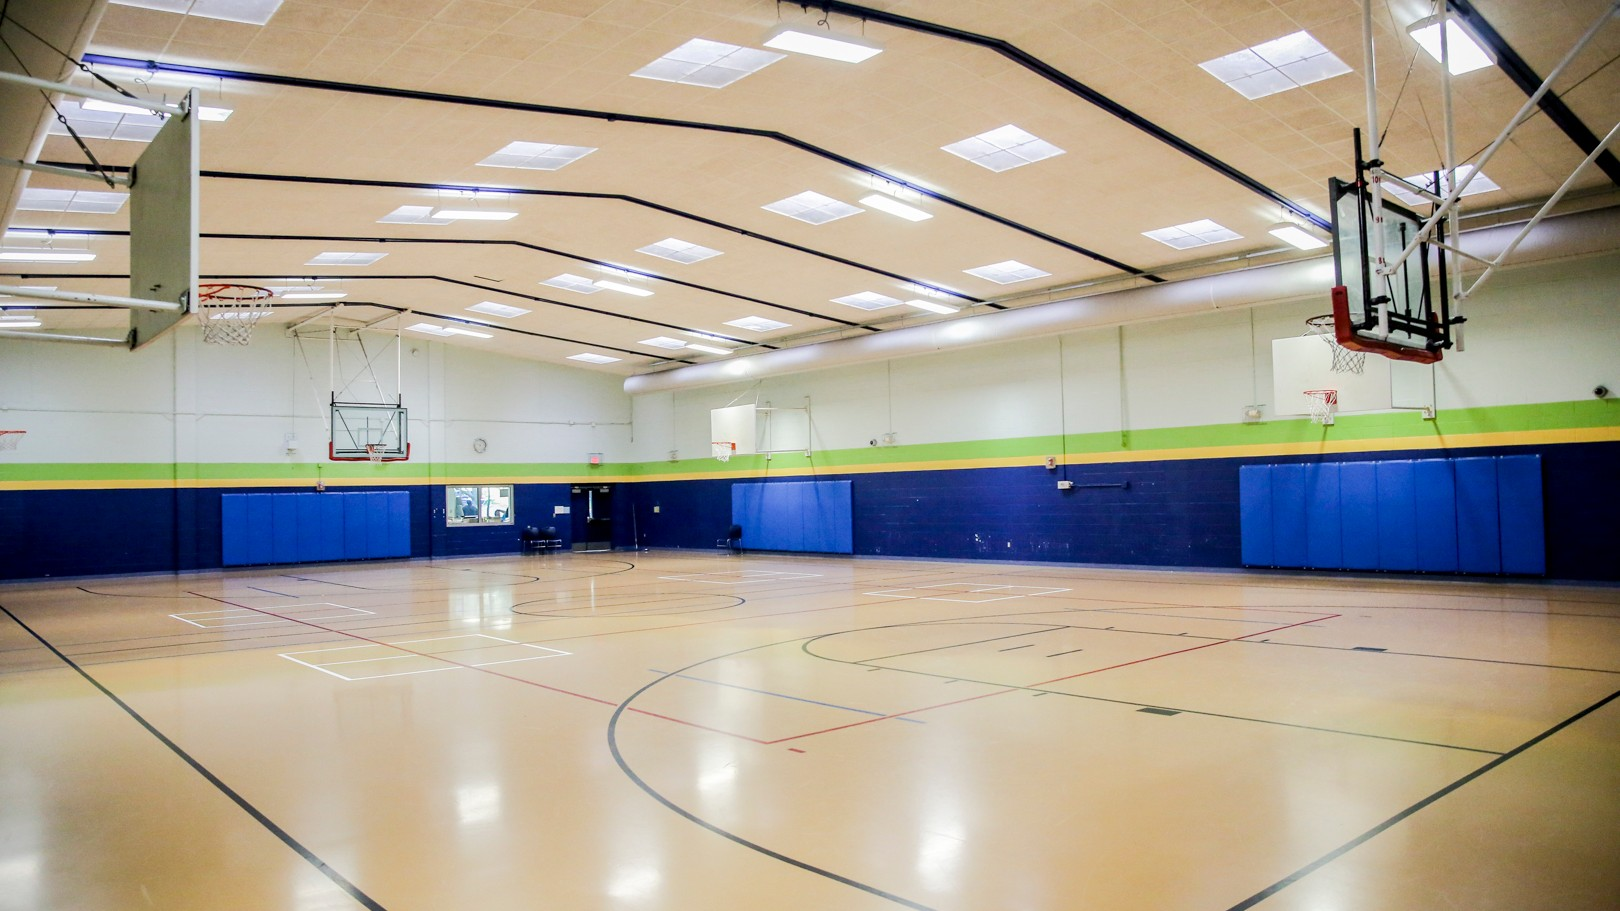 A large open gymnasium at Jaycee park